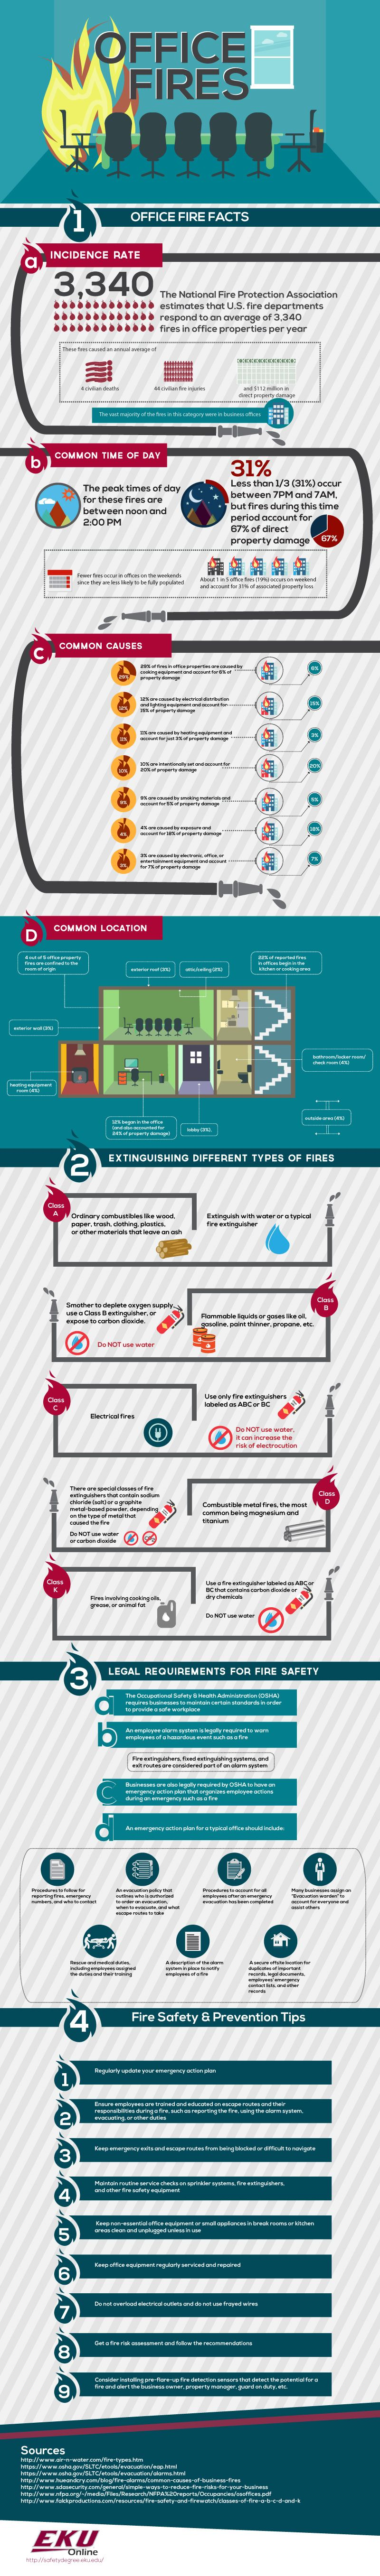 How to Prevent Office Fires [Infographic] (With images